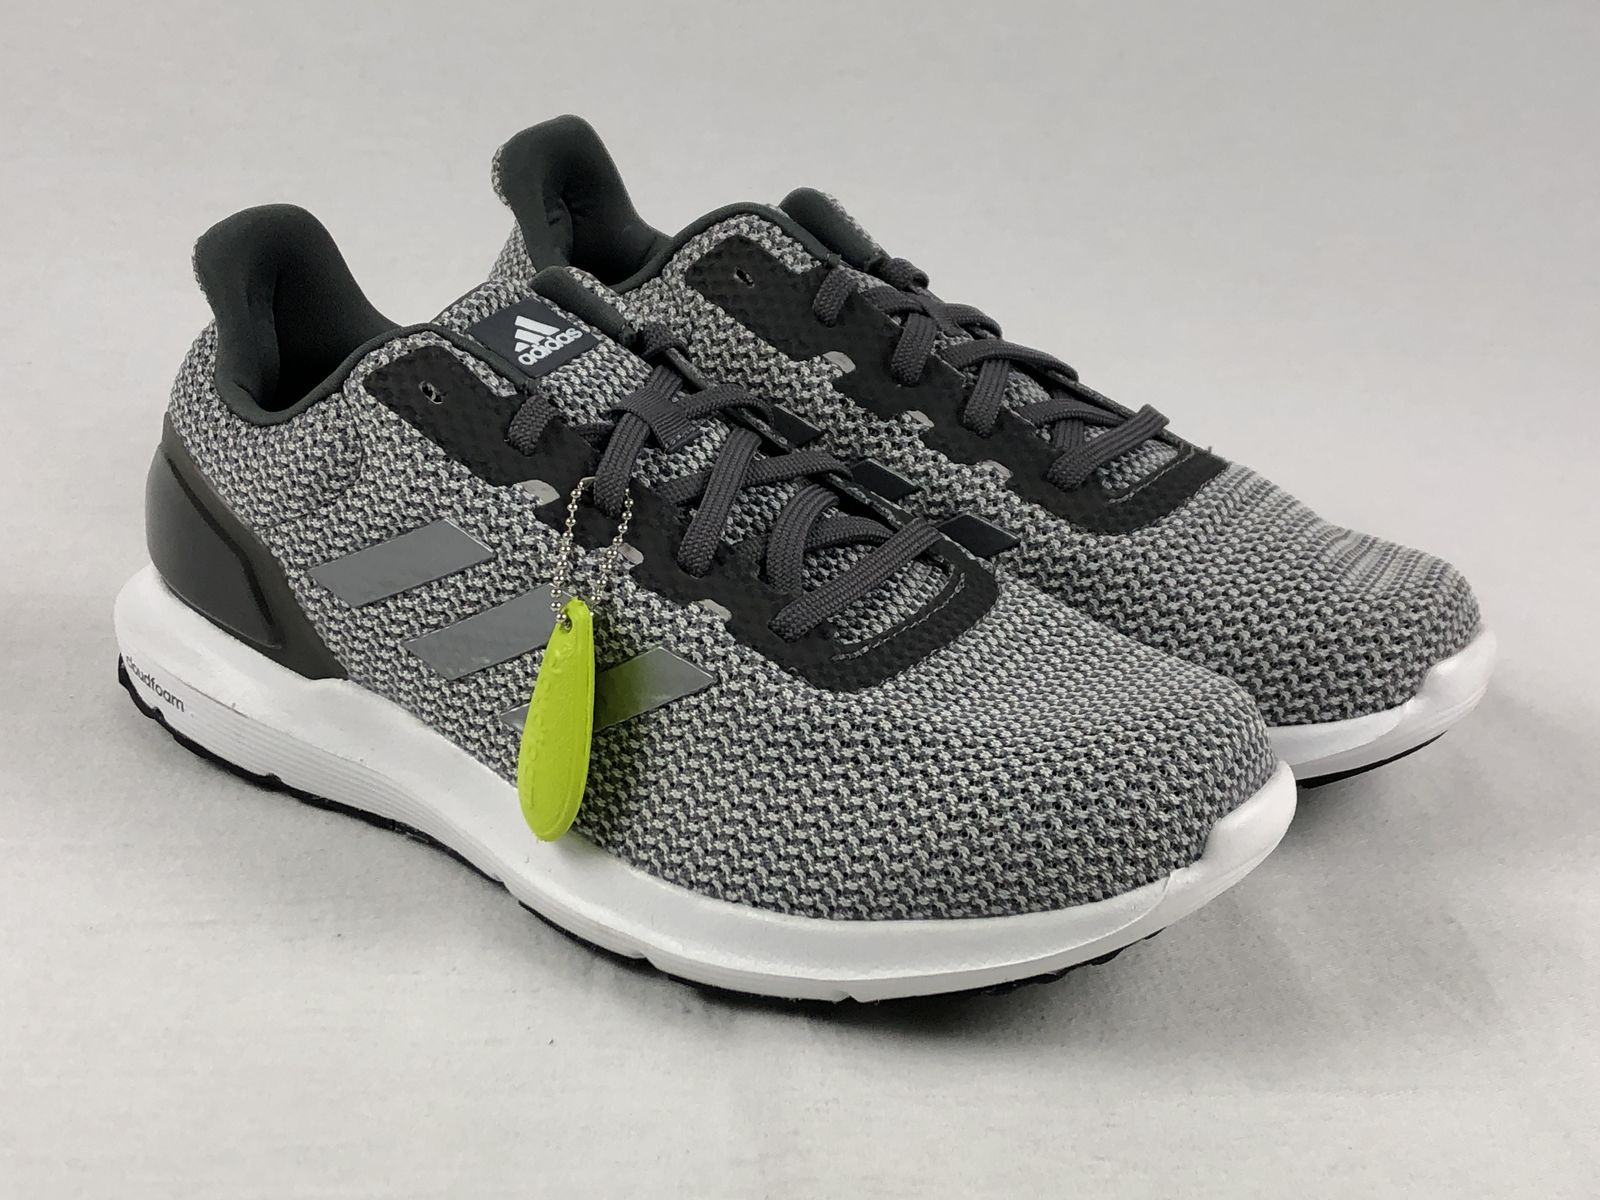 8ba418011857 Details about NEW adidas Cosmic 2 SL - Gray Running